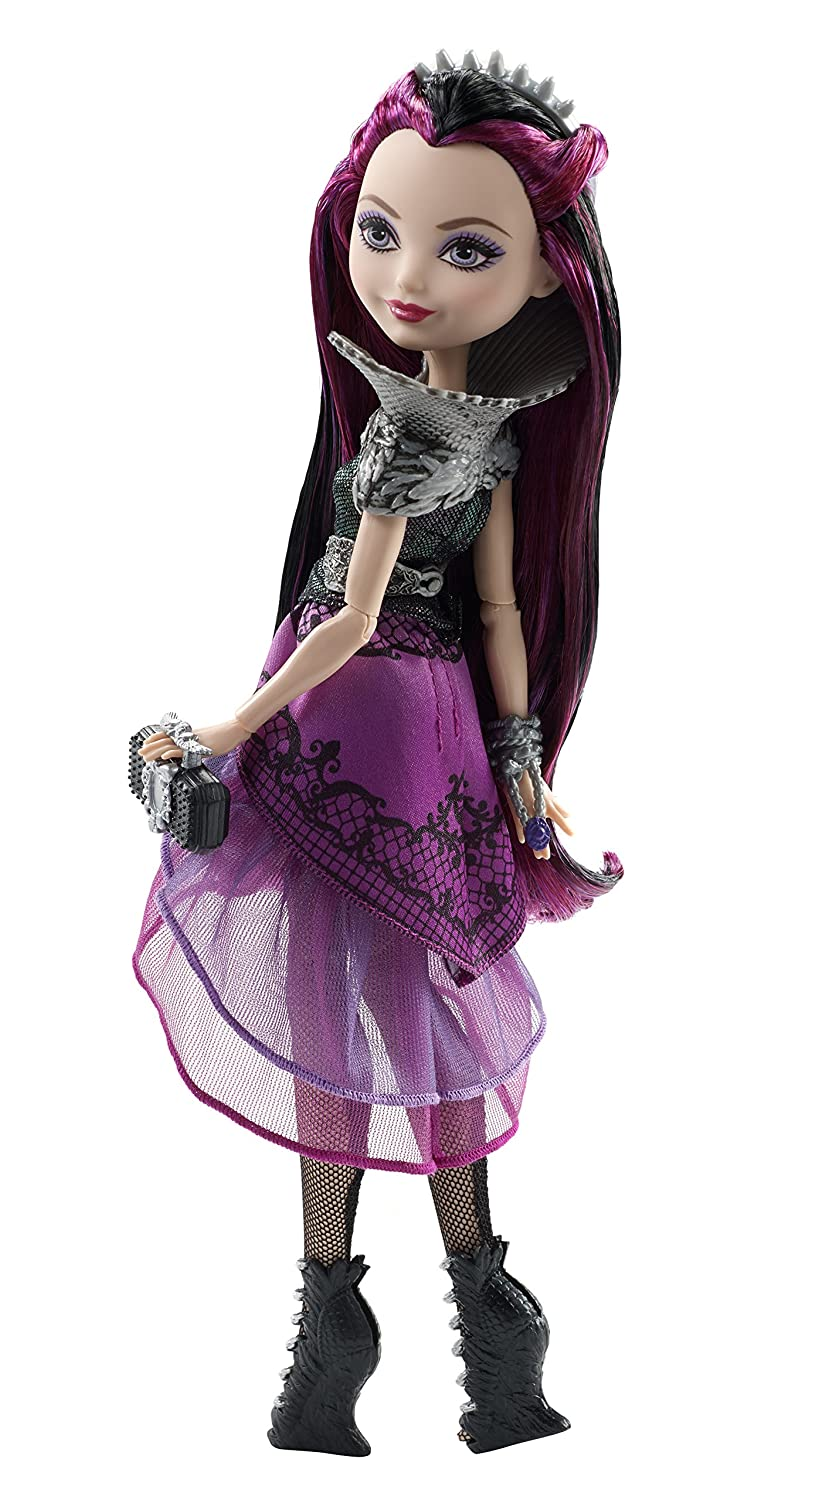 Mattel EVER AFTER HIGH DOLL CLOTHING 1ST FIRST CHAPTER RAVEN QUEEN PURPLE BLACK SKIRT By Brand, Company, Character